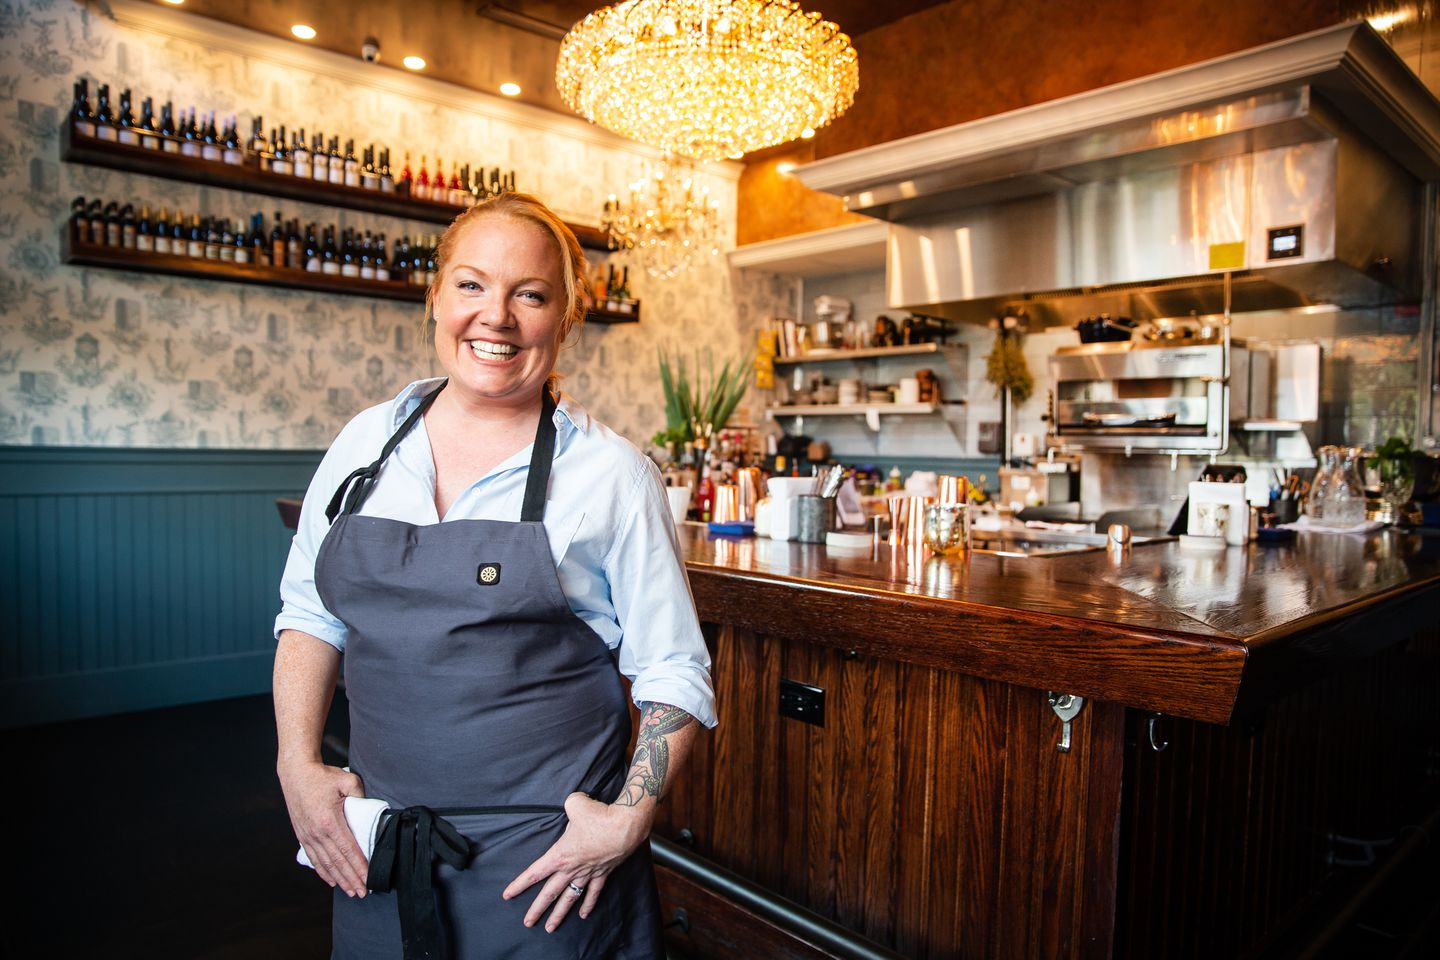 Chef Tiffani Faison at Fool's Errand.